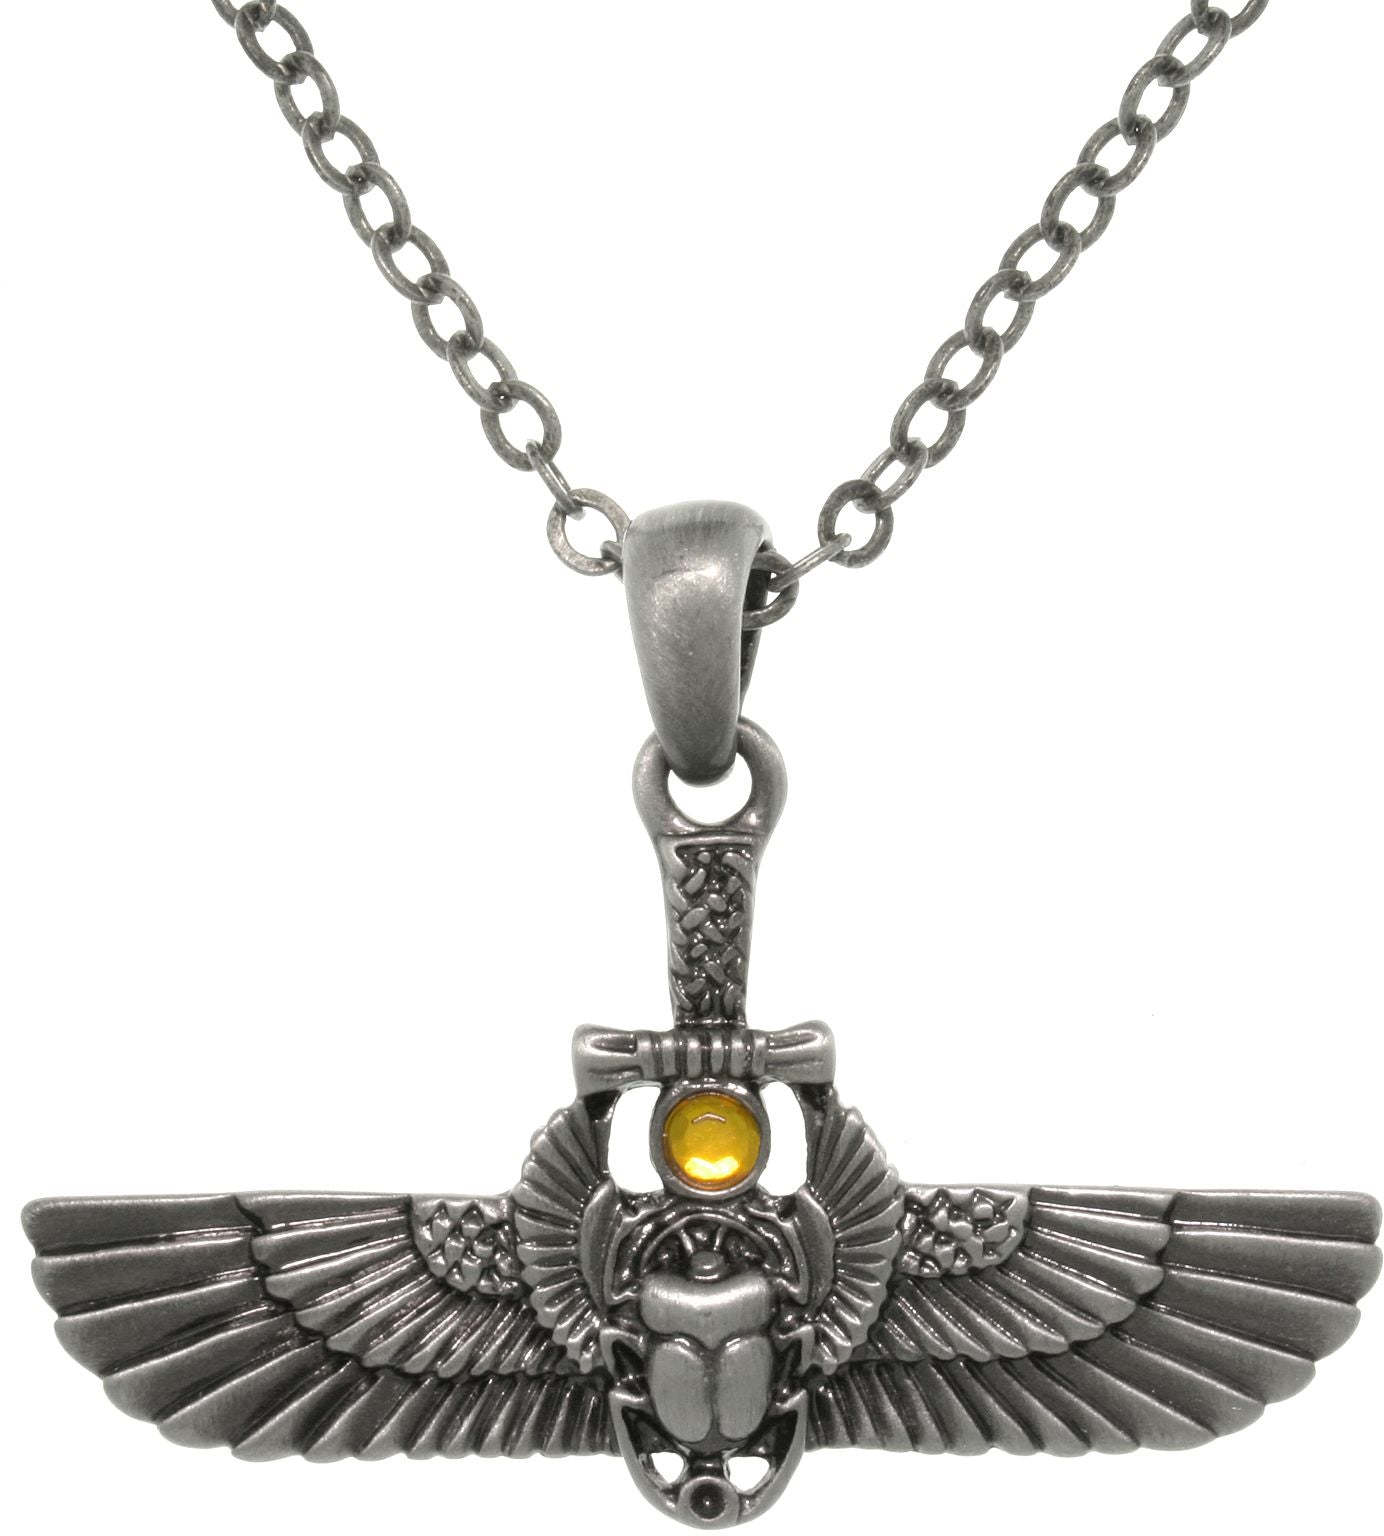 Jewelry Trends Pewter Alloy Egyptian Winged Scarab Pendant with 23 Inch Chain Necklace